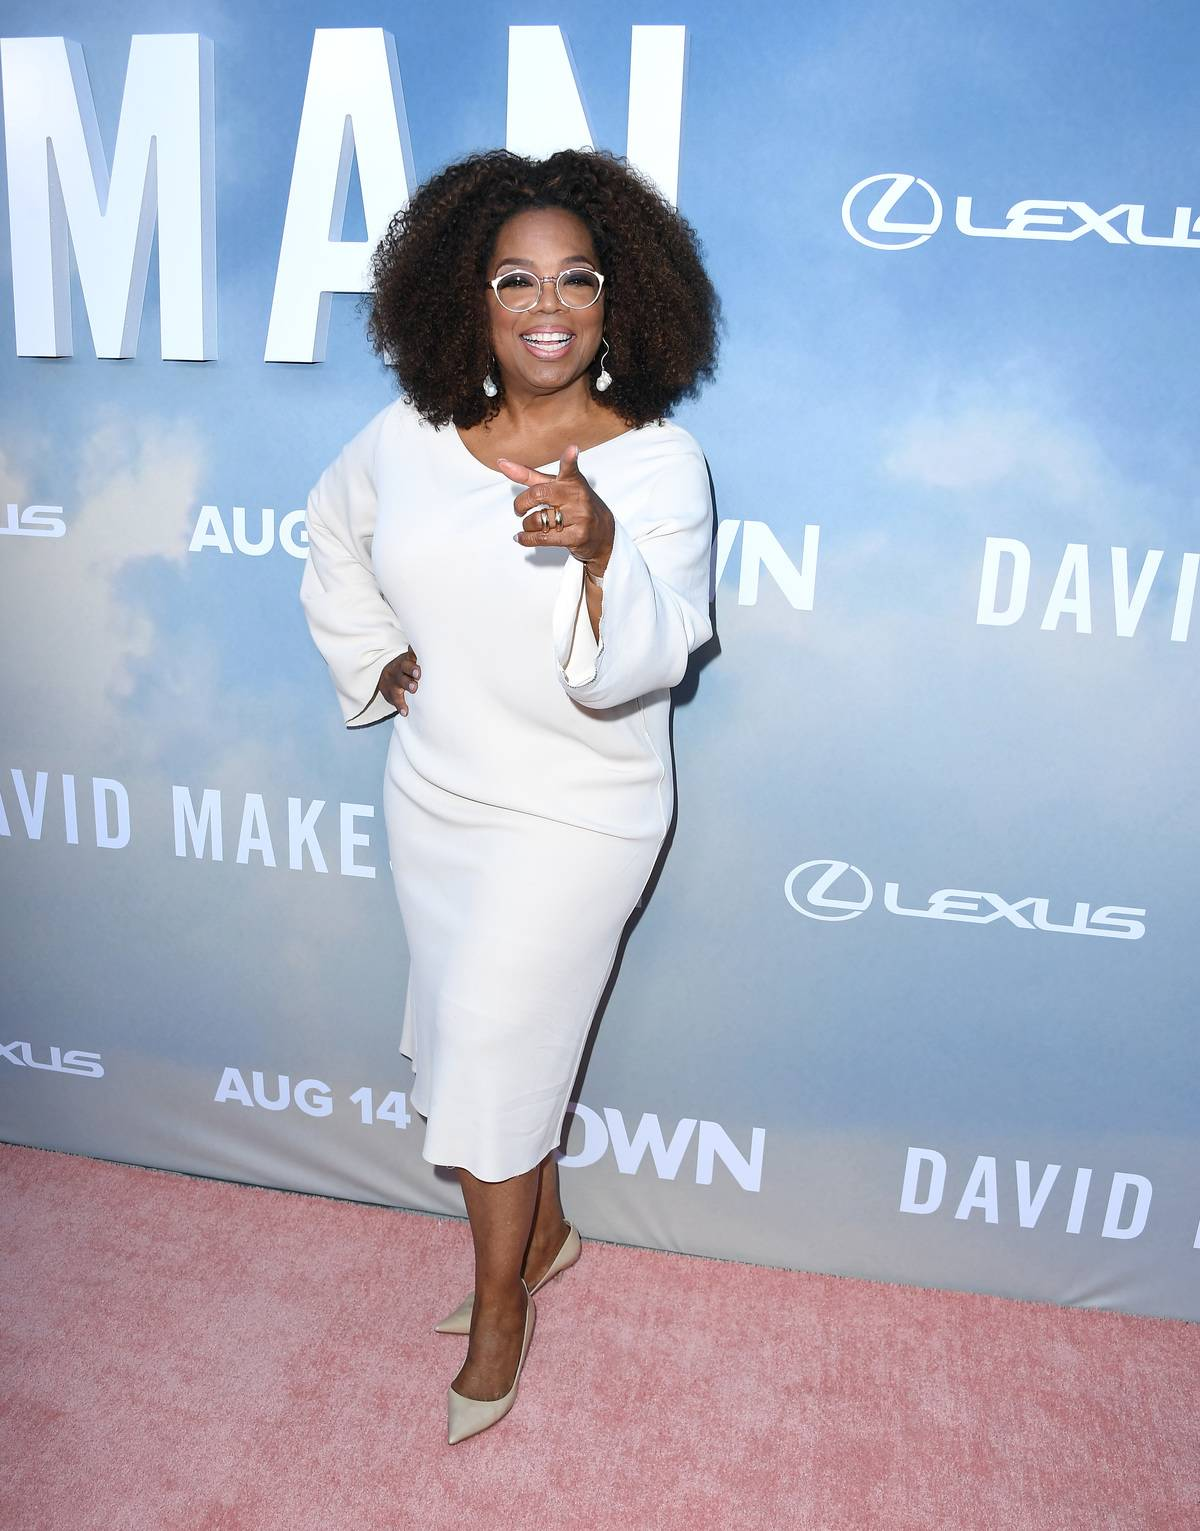 LOS ANGELES, CALIFORNIA - AUGUST 06: Oprah Winfrey arrives at the Premiere Of OWN's